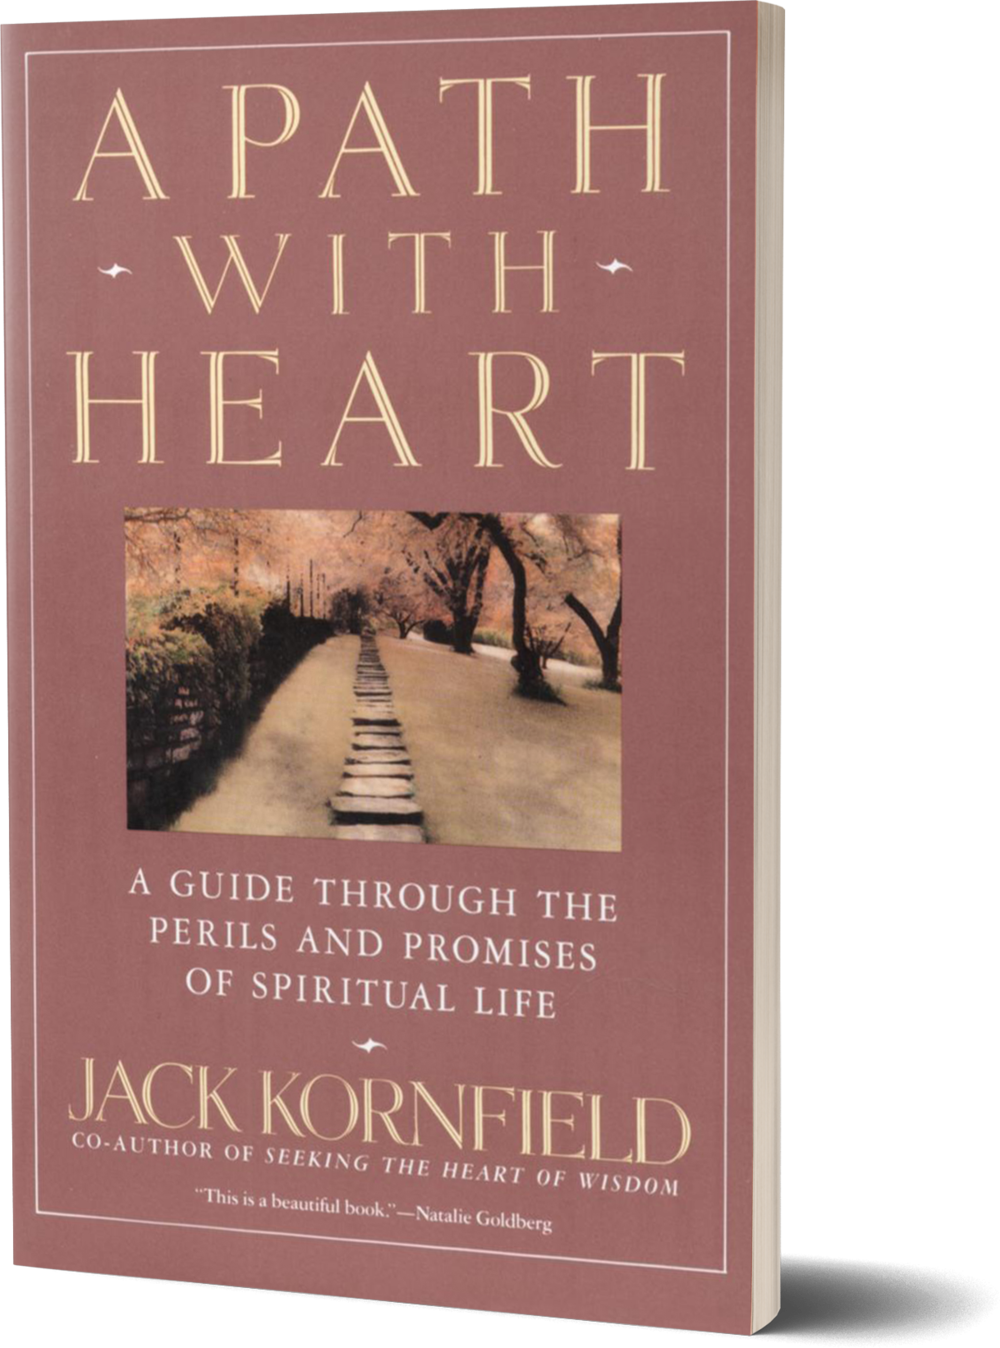 A Path with Heart- A Guide Through the Perils and Promises of Spiritual Life by Jack Kornfield.png